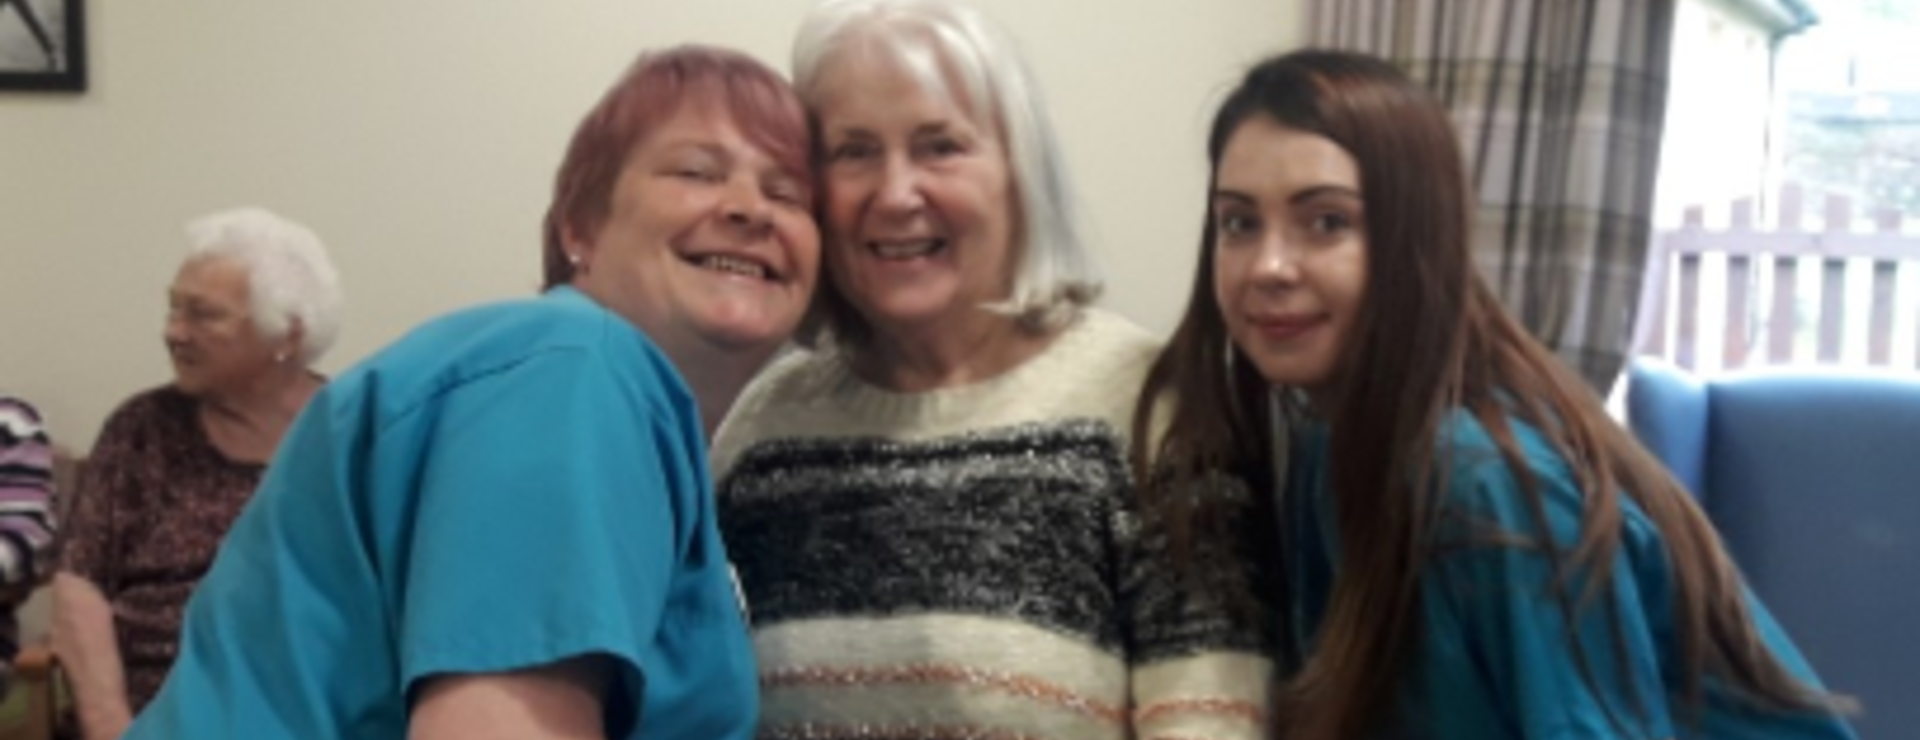 Sandra making friends with Nikki Auer and Jamie-Lee our carers